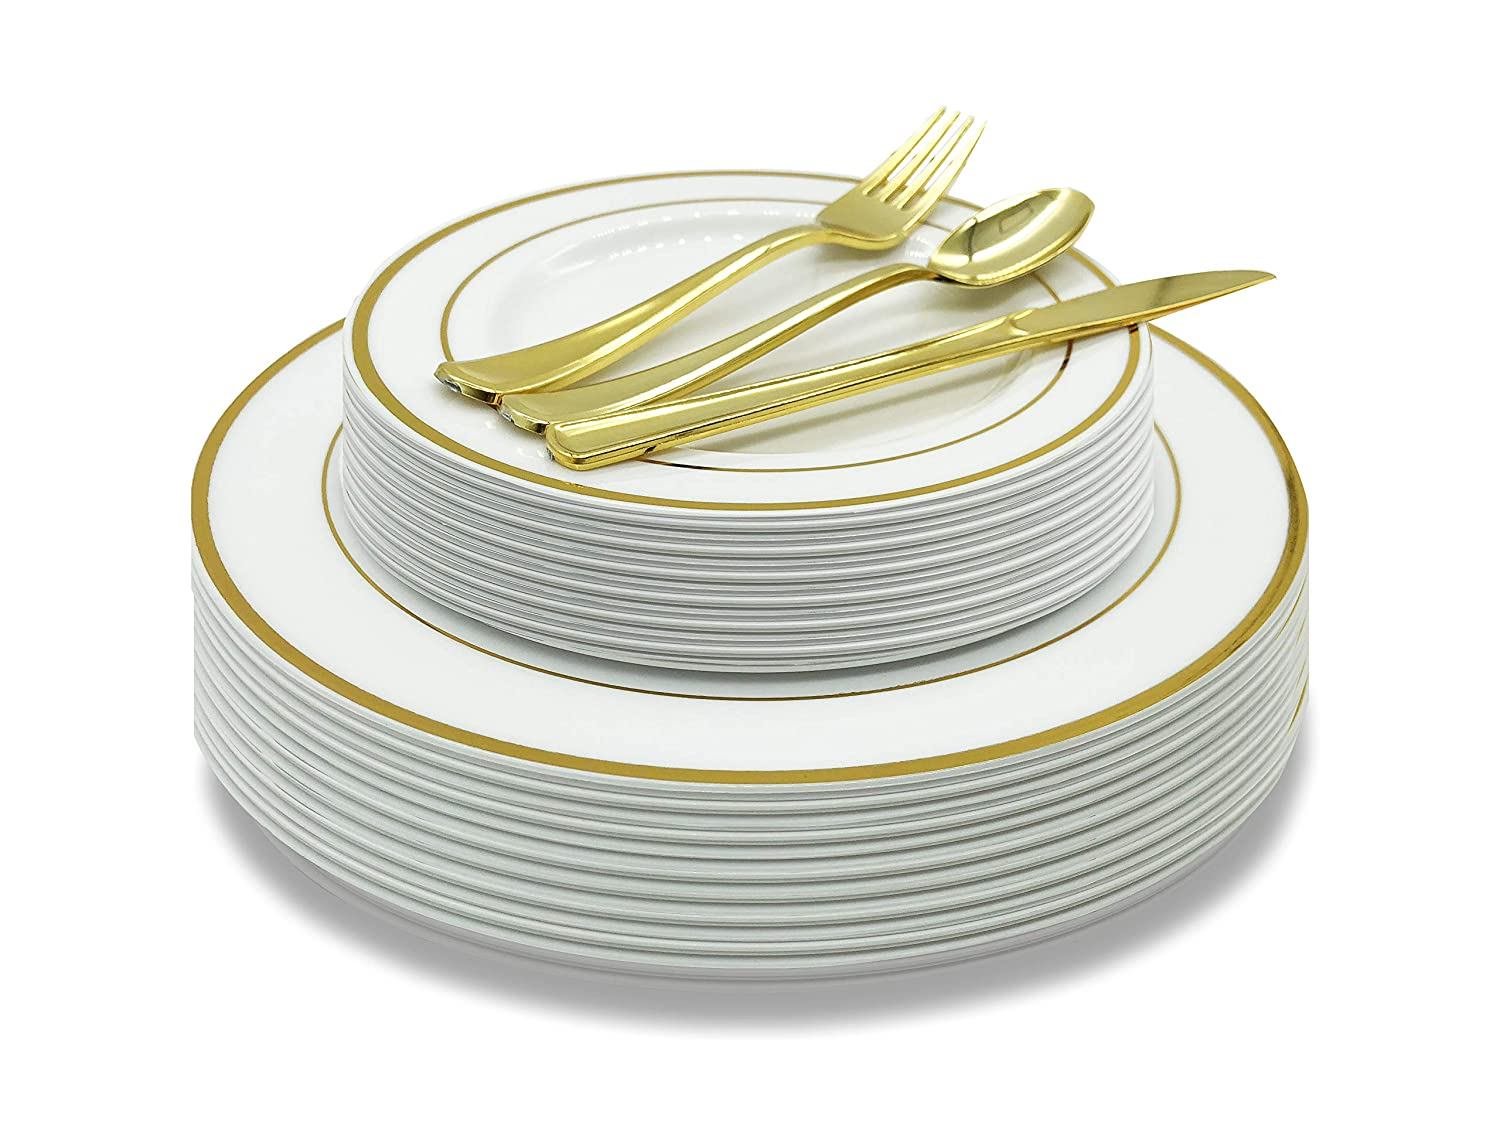 EcoEarth 125-Piece Elegant Plastic Plates & Cutlery Set Service for 25 Disposable Place Setting Includes: 25 Dinner Plates, 25 Dessert Plates, 25 Forks, 25 Knives, 25 Spoons (Gold Rim), Dinnerware Set